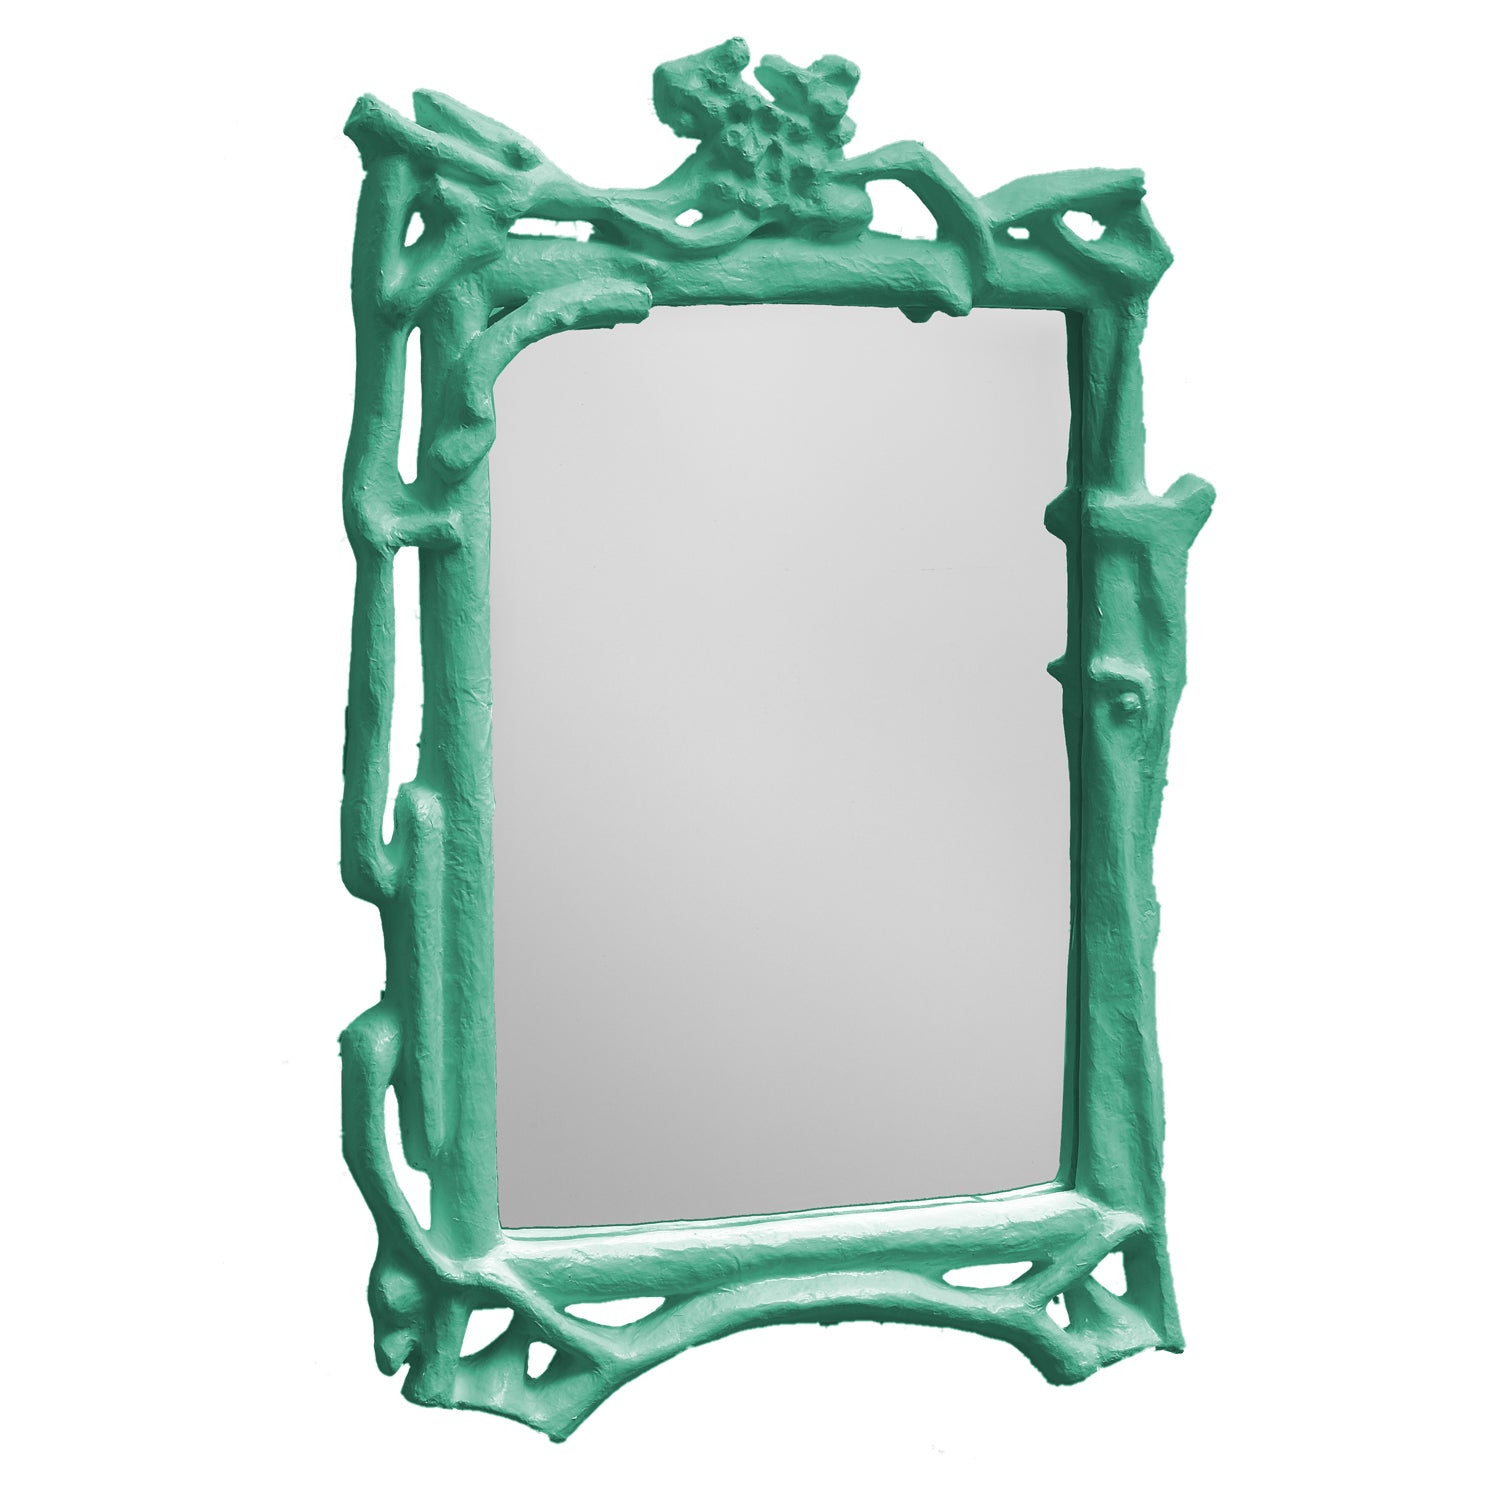 Magalie Mirror, artisan made papier mache branches frame